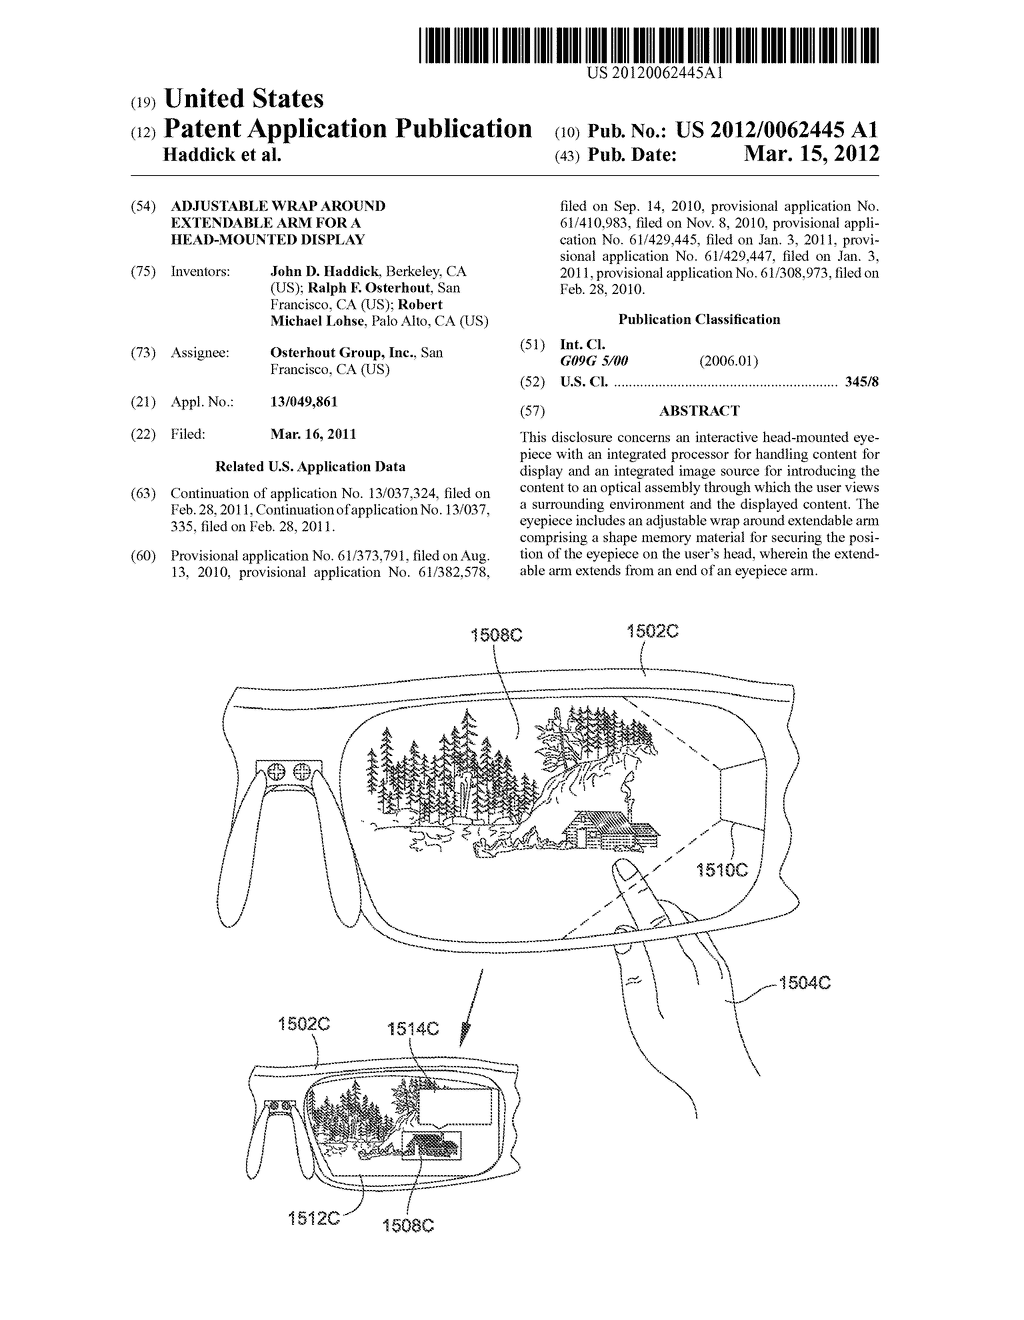 ADJUSTABLE WRAP AROUND EXTENDABLE ARM FOR A HEAD-MOUNTED DISPLAY - diagram, schematic, and image 01